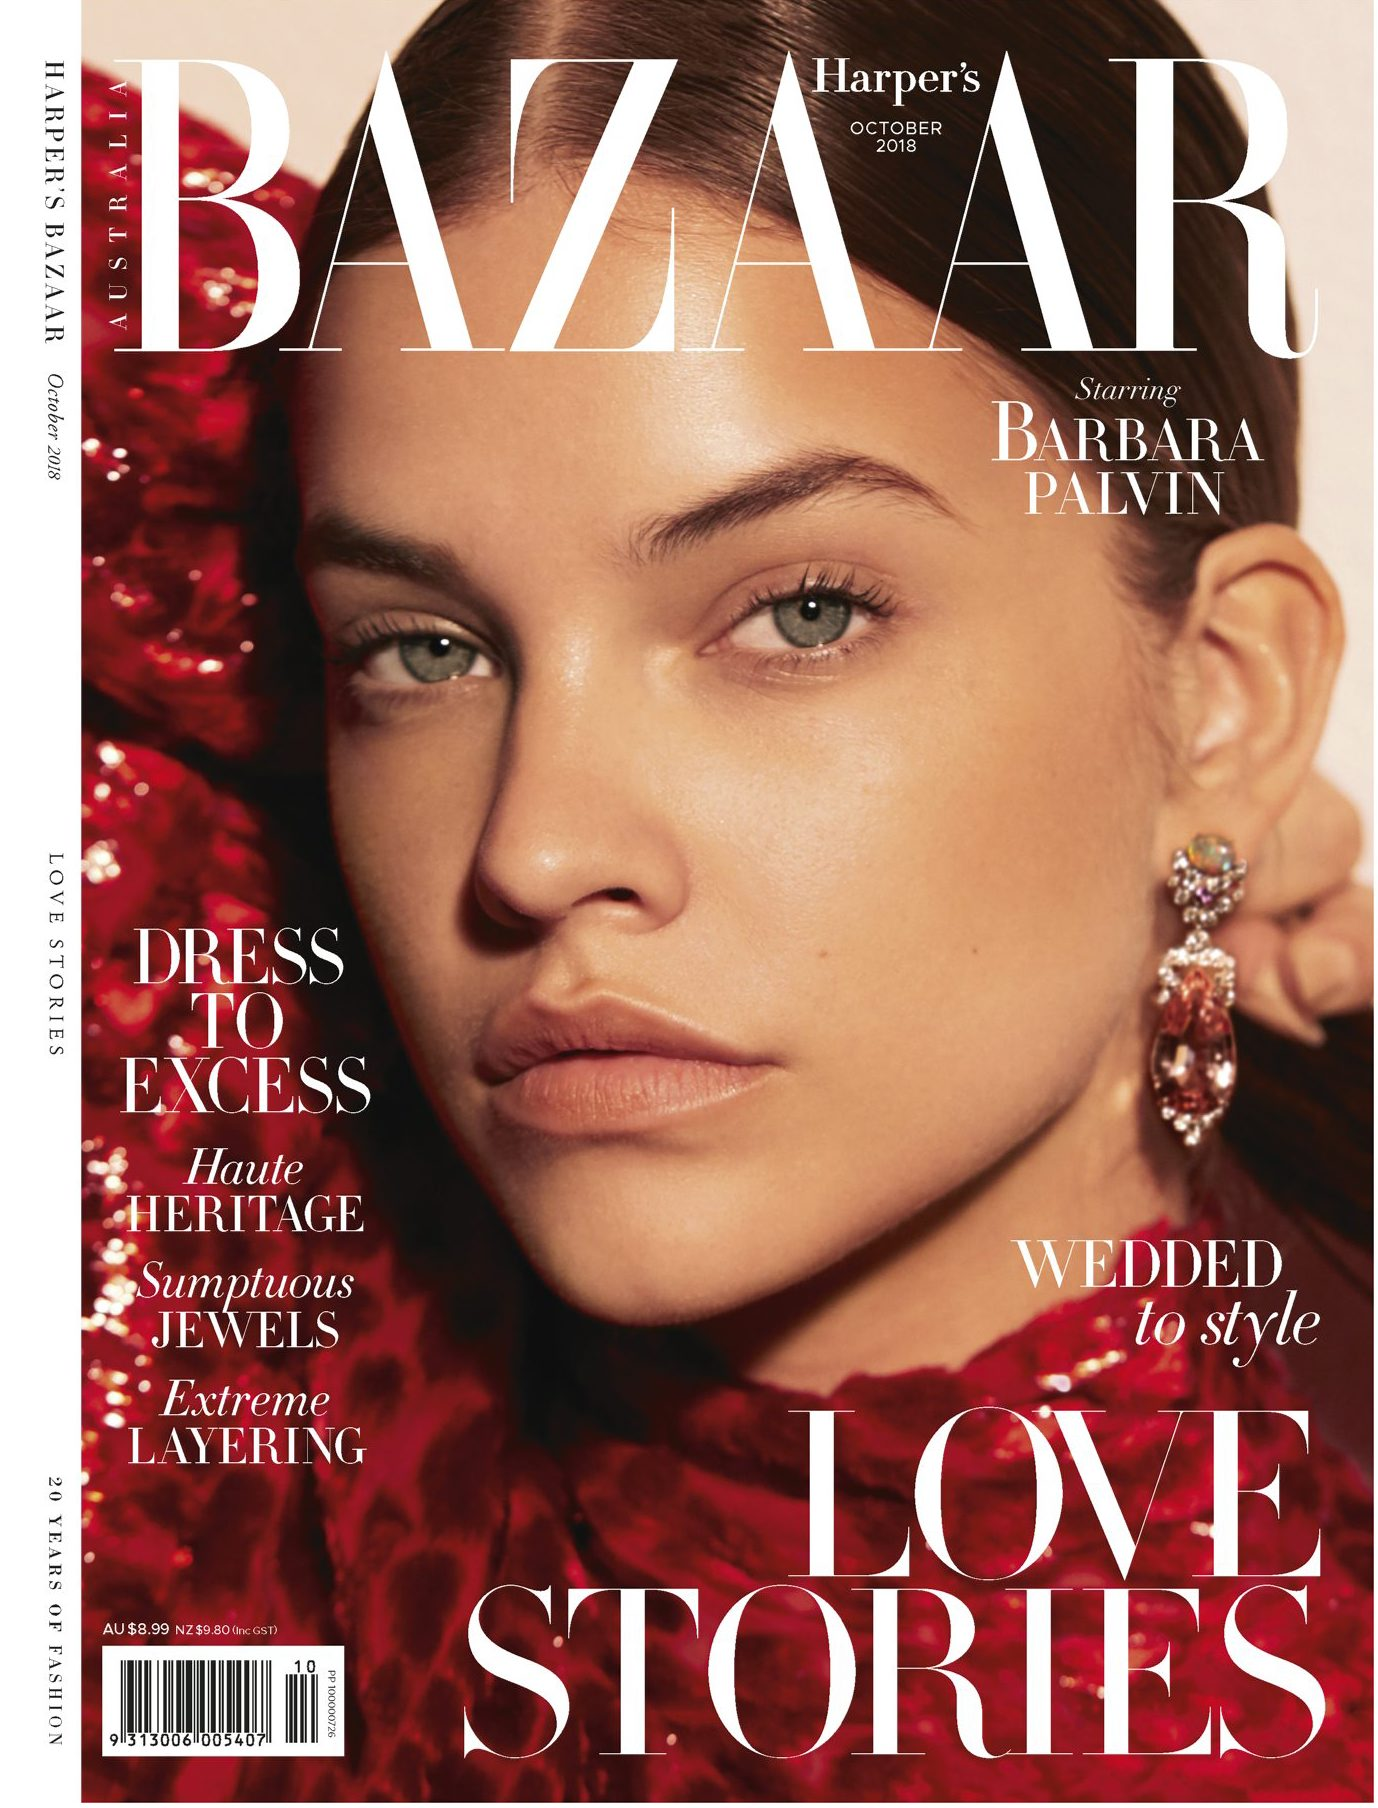 BAZAAR October Cover.jpg